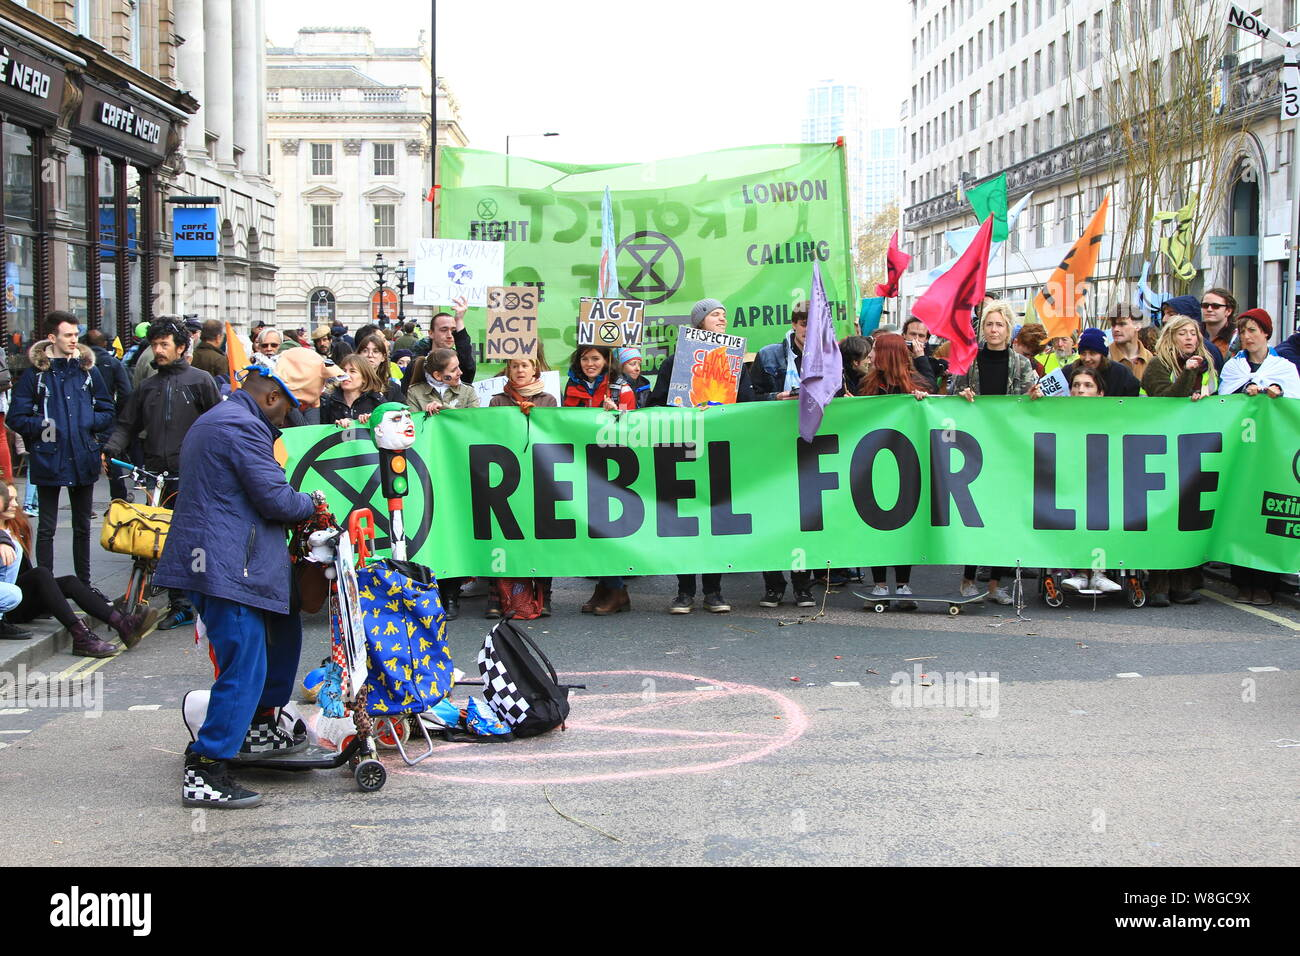 EXTINCTION REBELLION PROTEST BRINGS MUCH OF CENTRAL LONDON TO A HALT. ROAD CLOSURES AS DEPICTED IN THIS PICTURE AT WATERLOO BRIDGE BY A SMALL NUMBER OF PEOPLE HOLDING A REBEL FOR LIFE SIGN. THE TACTIC DESIGNED TO BRING AWARENESS TO HUMAN INDUCED CLIMATE CHANGE. Stock Photo